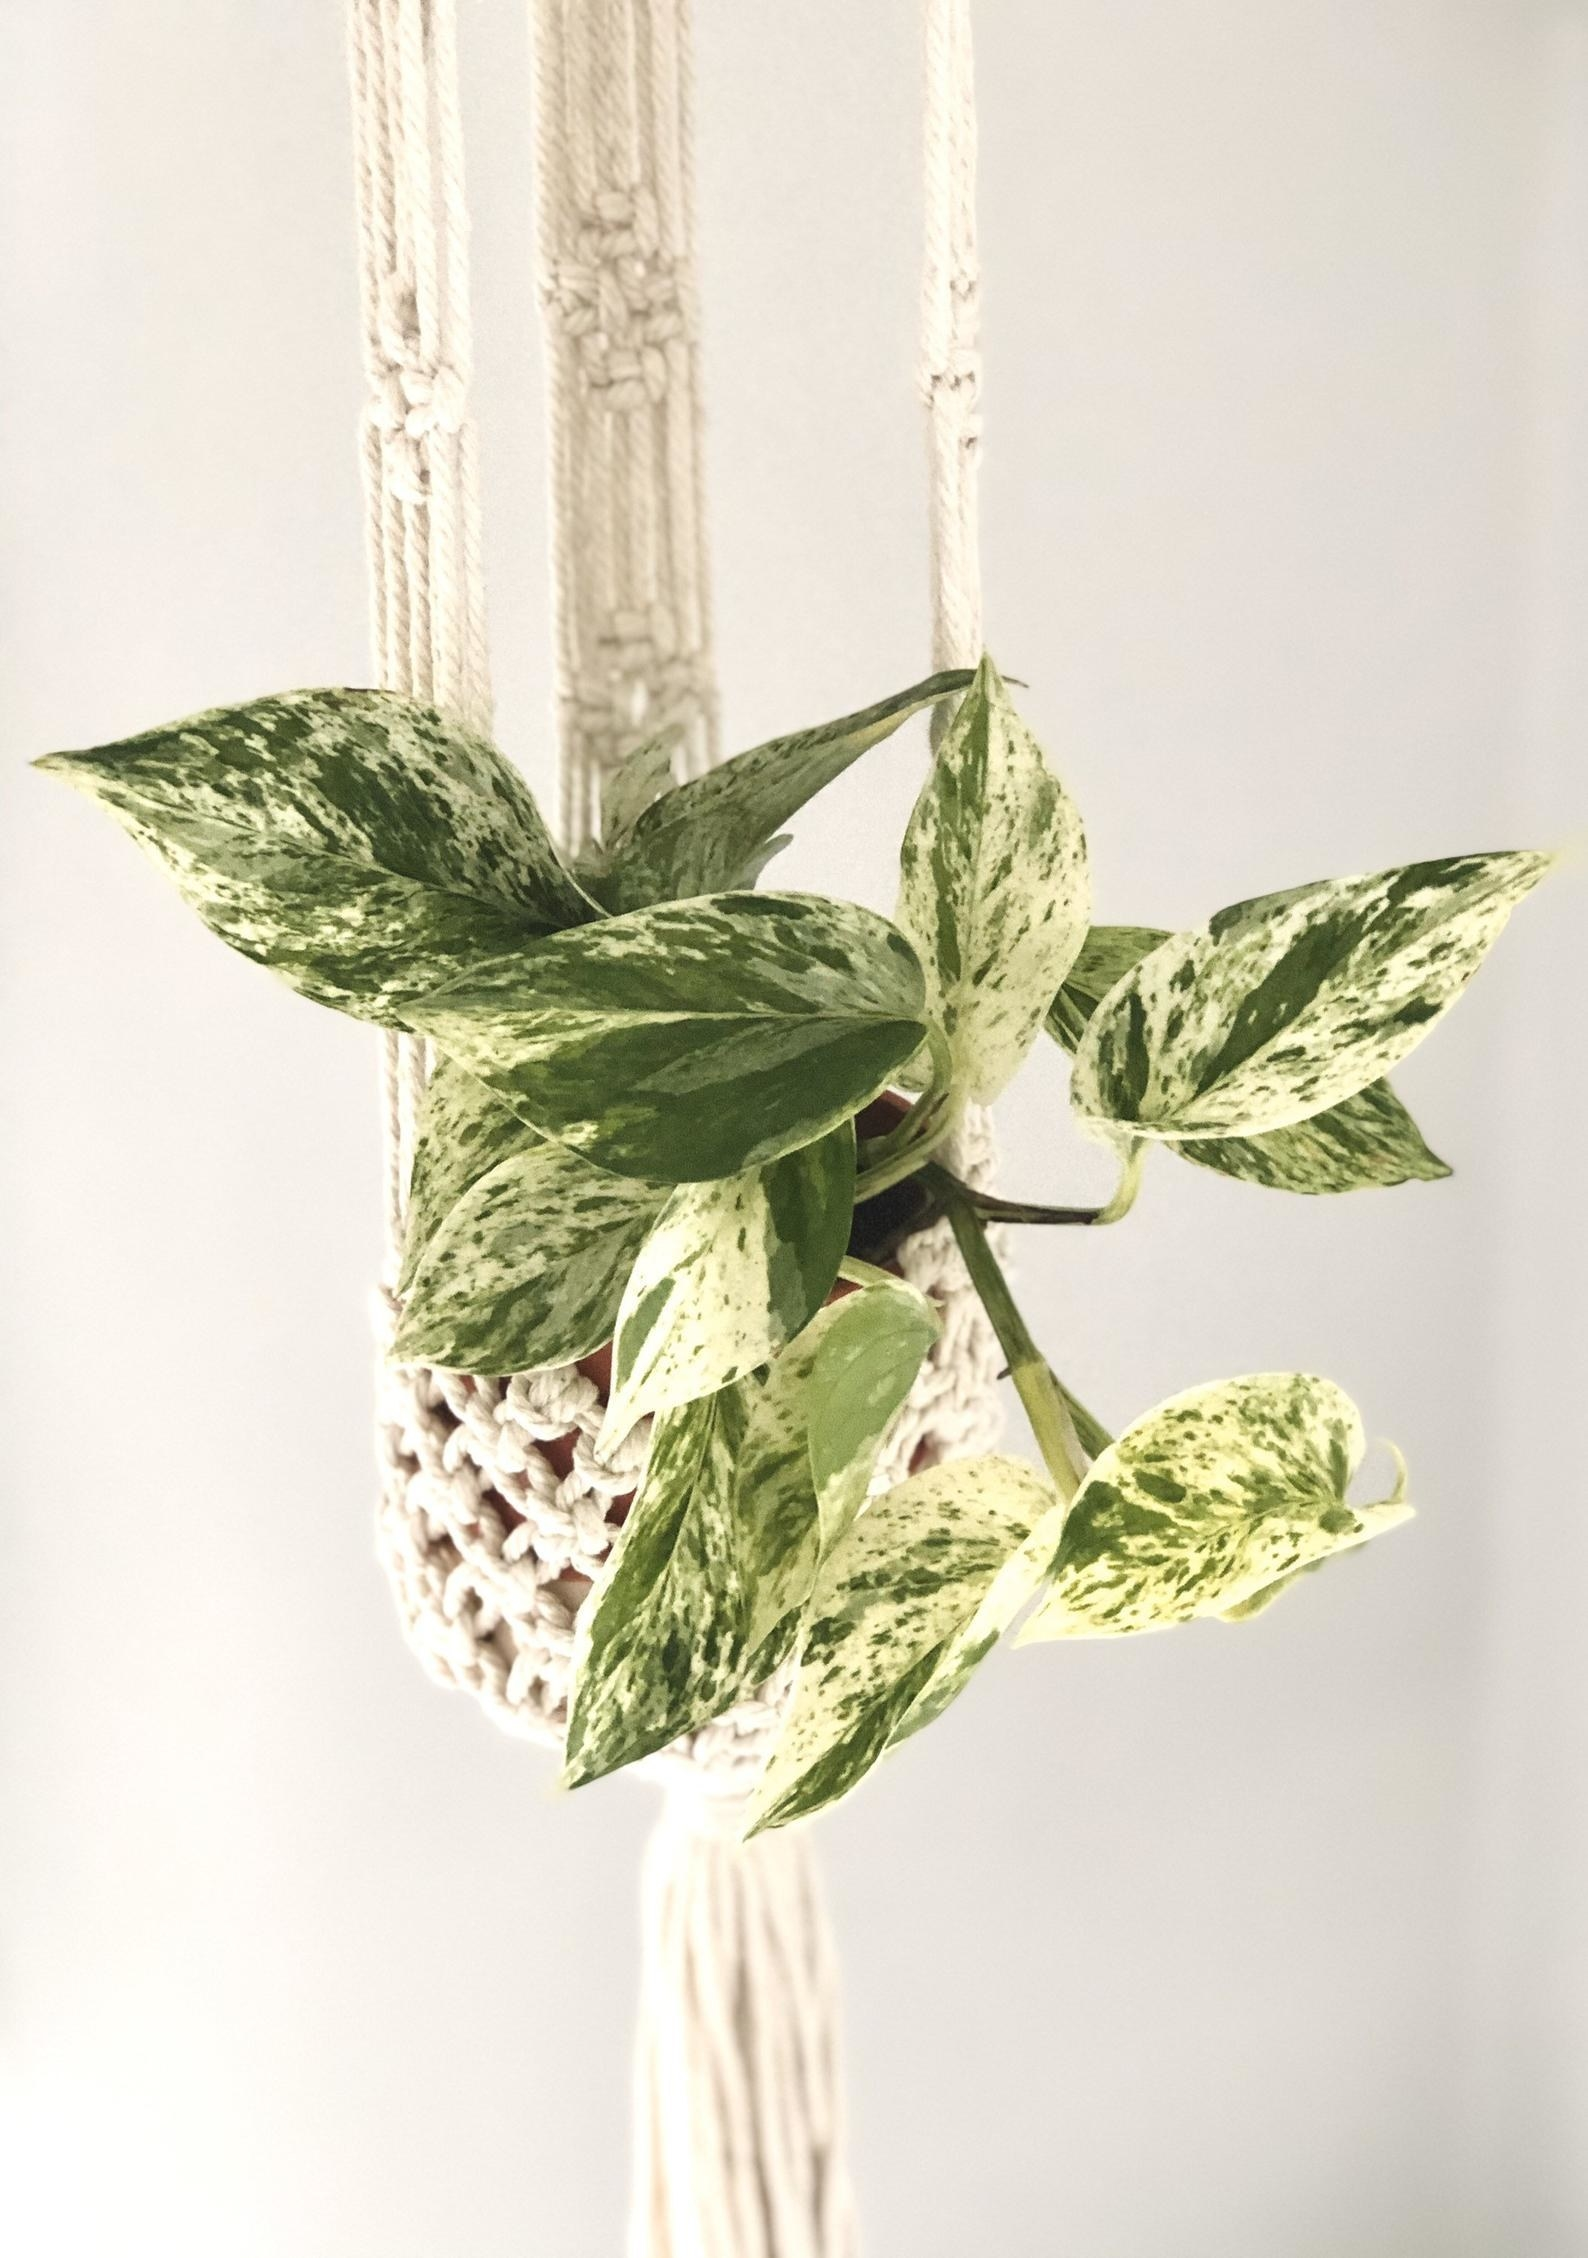 The Pothos plant hanging in a macrame hanger